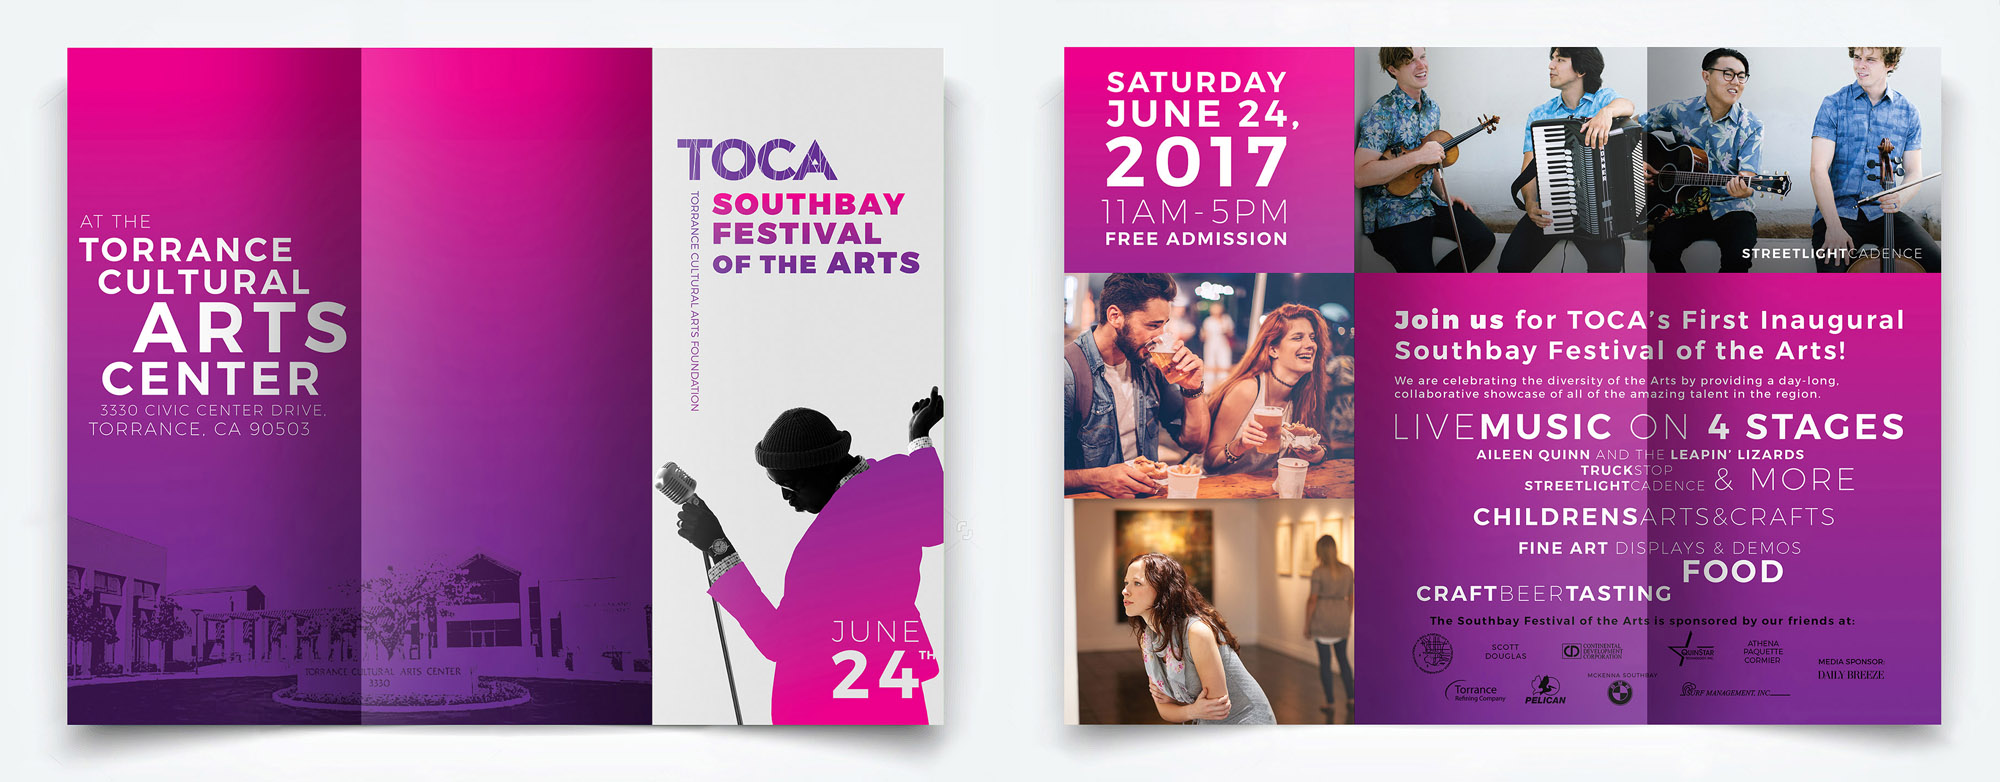 Brochure for TOCA Southbay Festival of the Arts